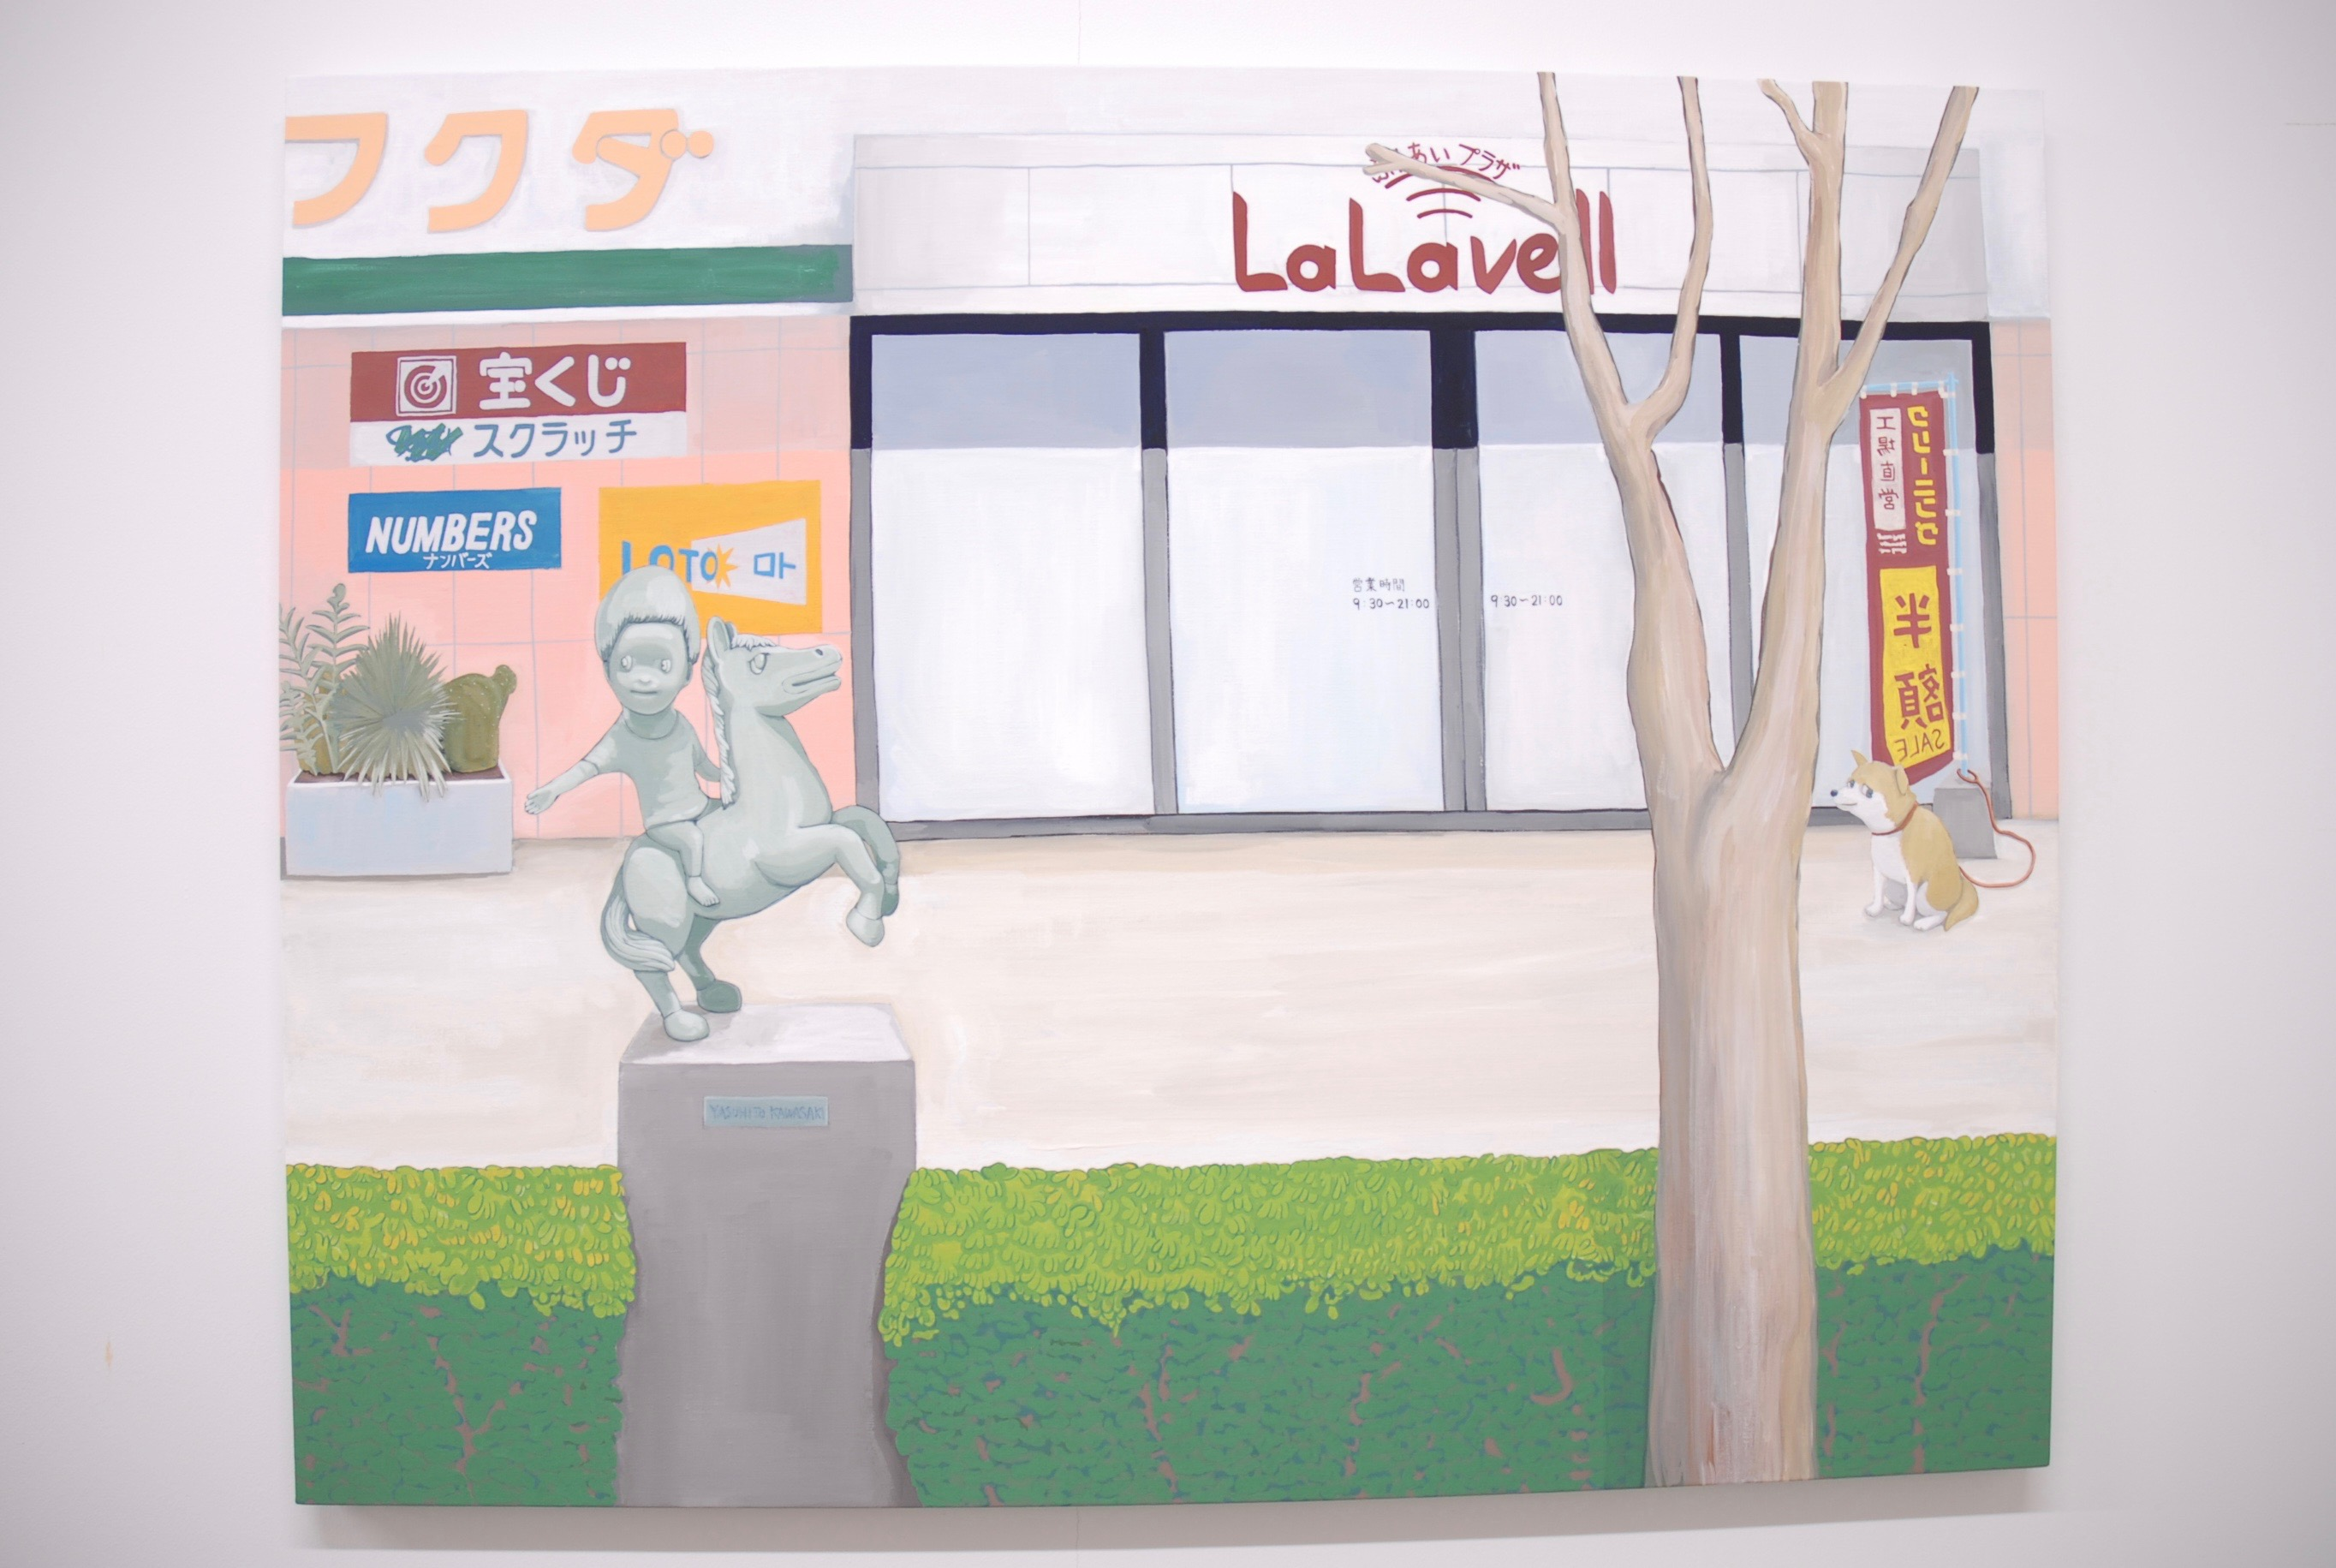 Scenery with bronze statue(supermarket)